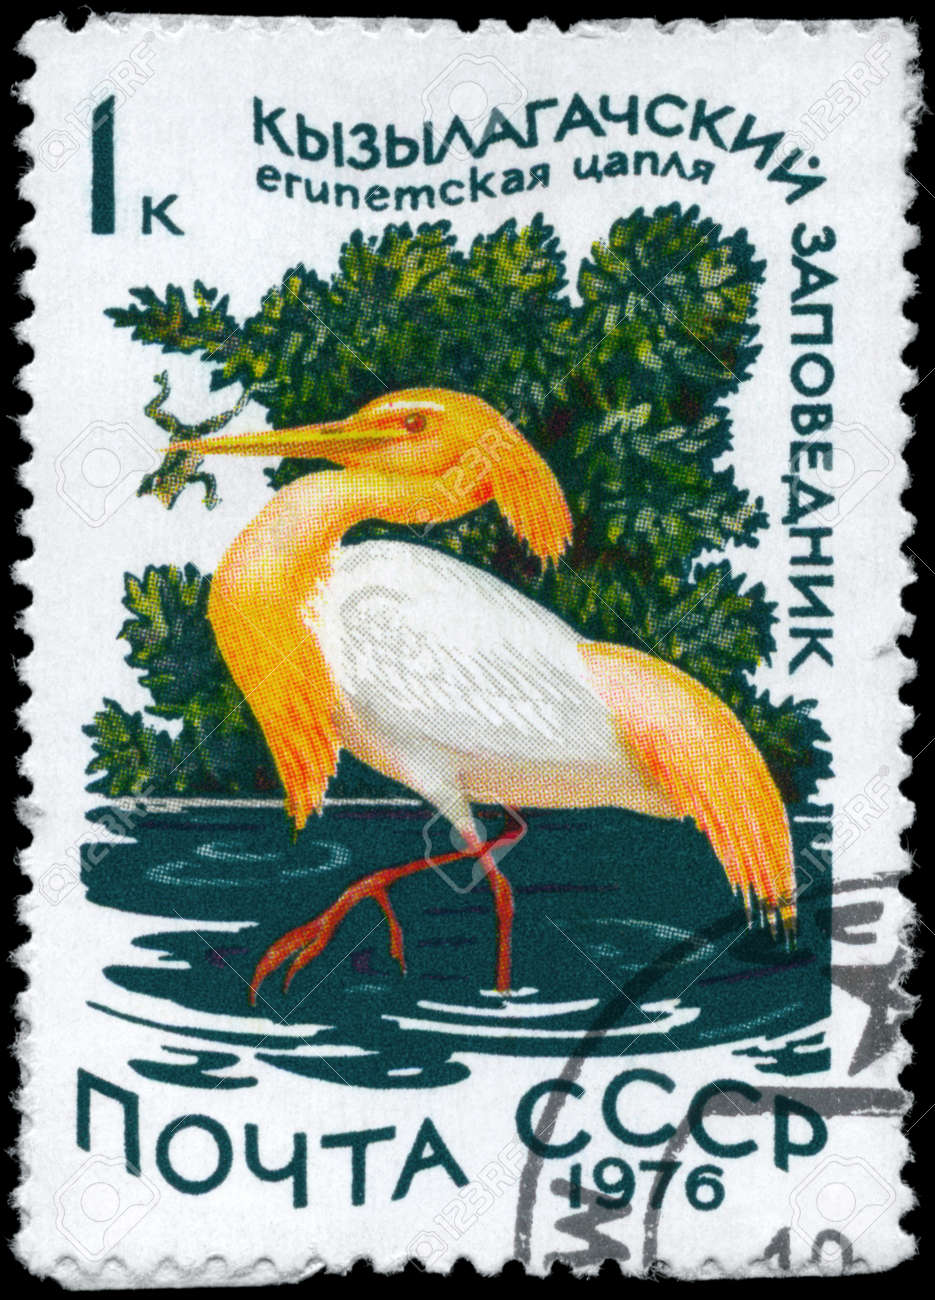 USSR - CIRCA 1976: A Stamp printed in USSR shows image of a Squacco Heron with the inscription